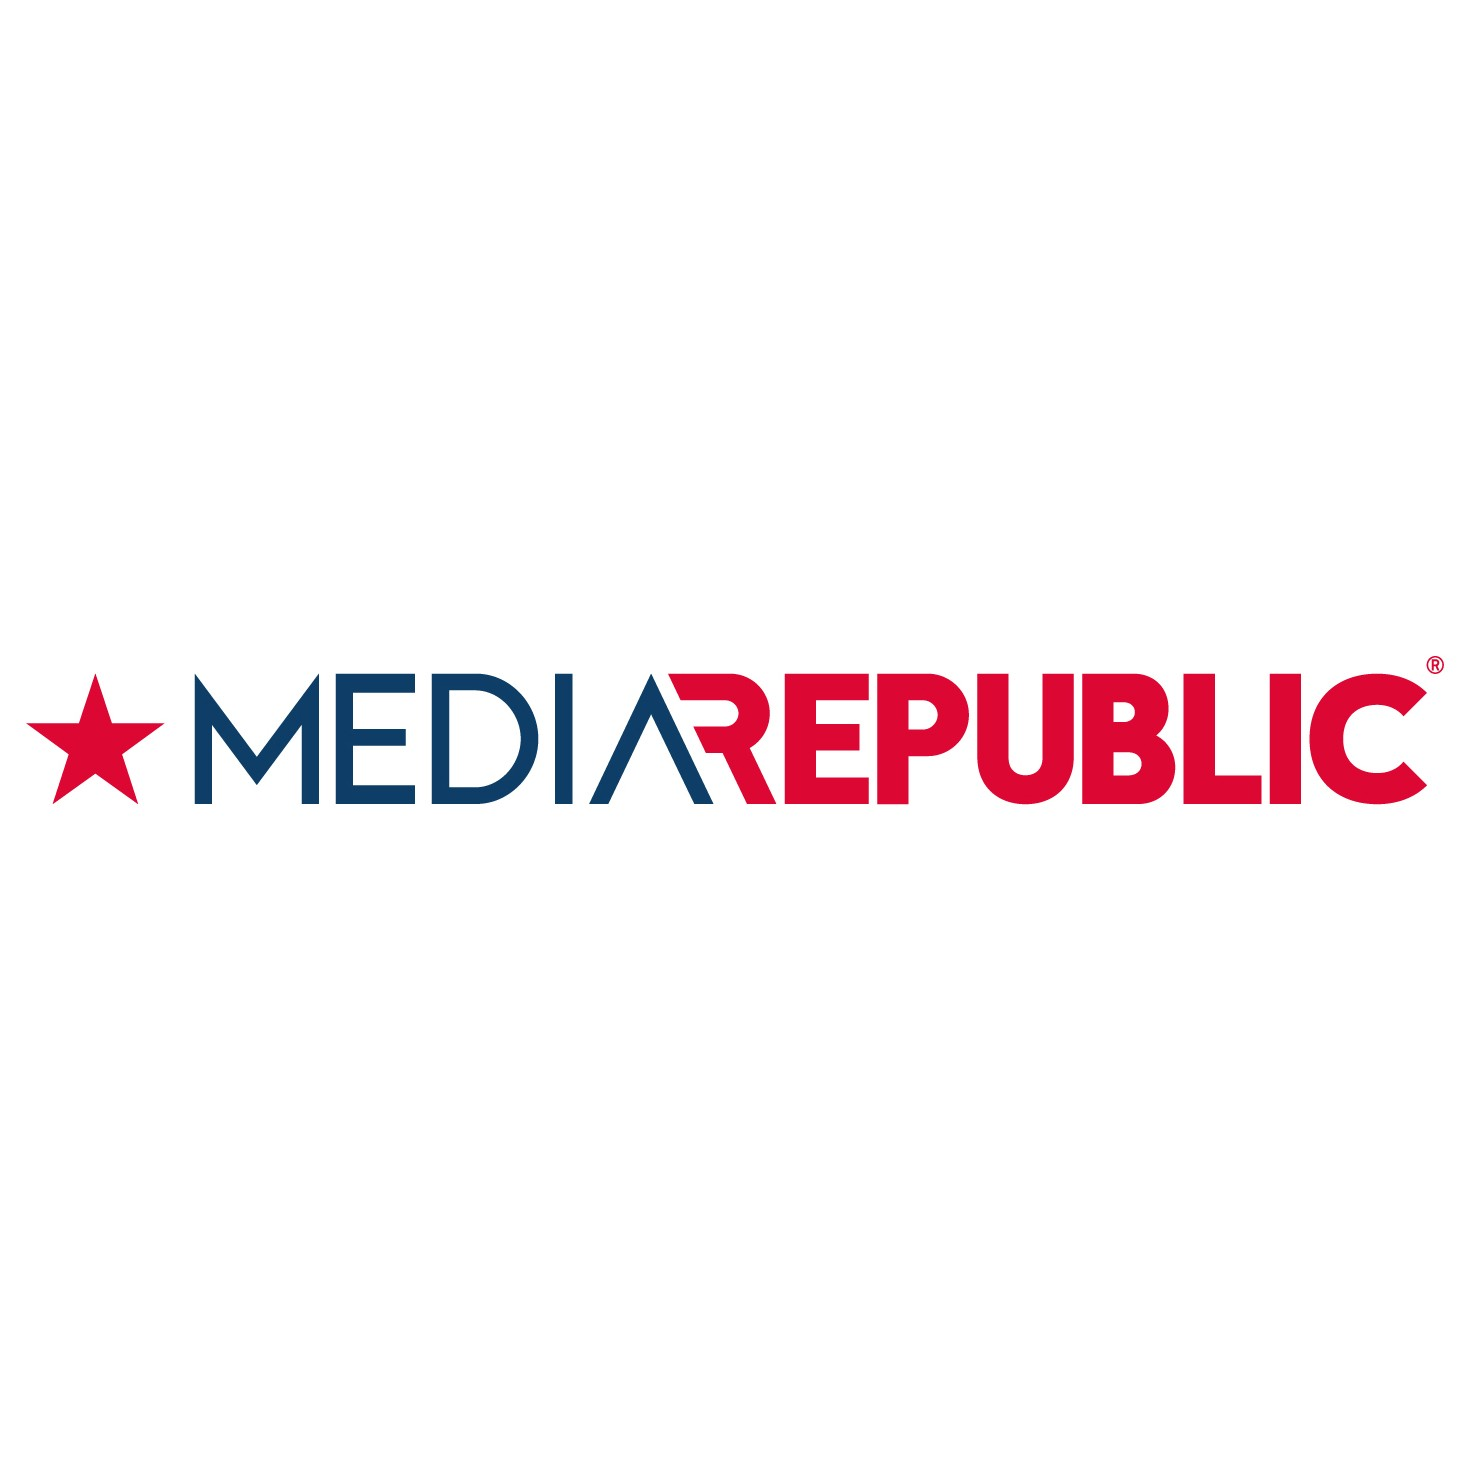 Media Republic's logo